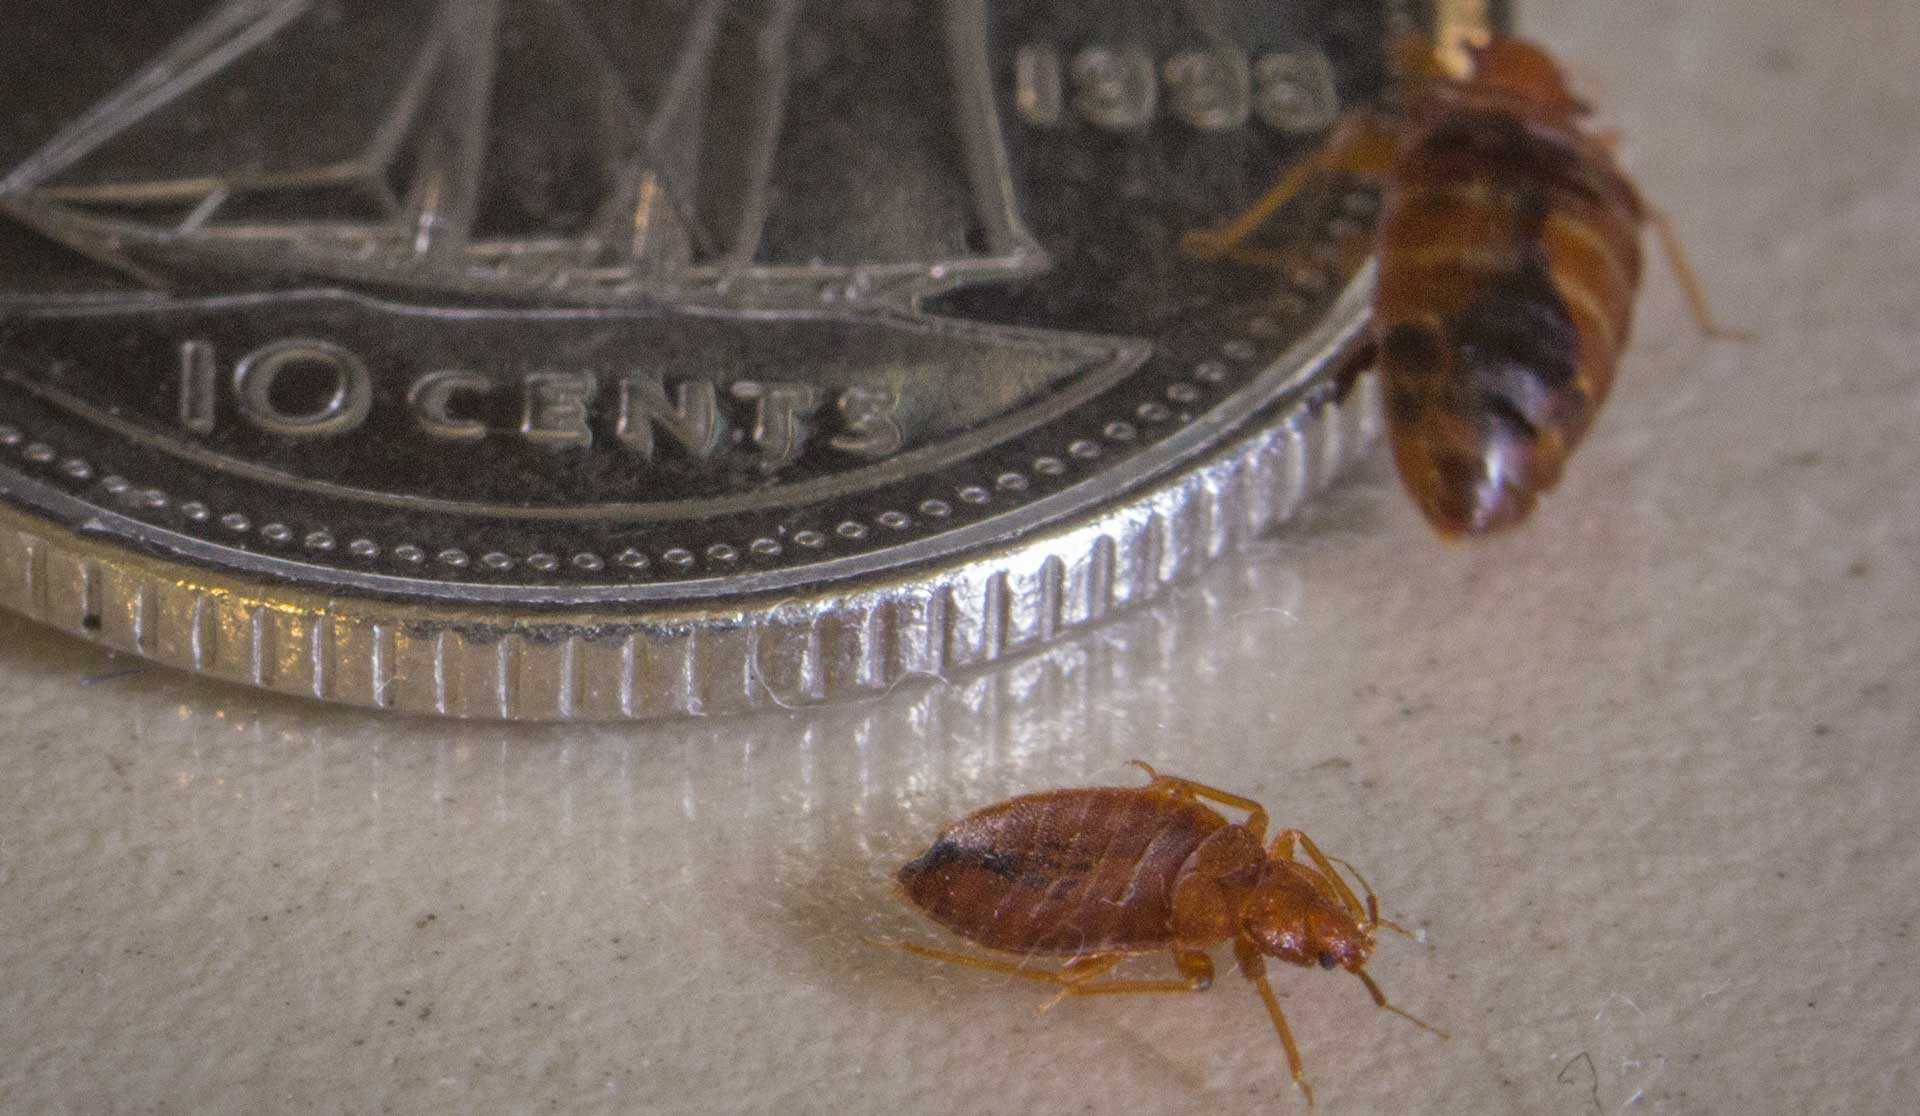 2 adult bed bugs besides a 10 ¢ coin.